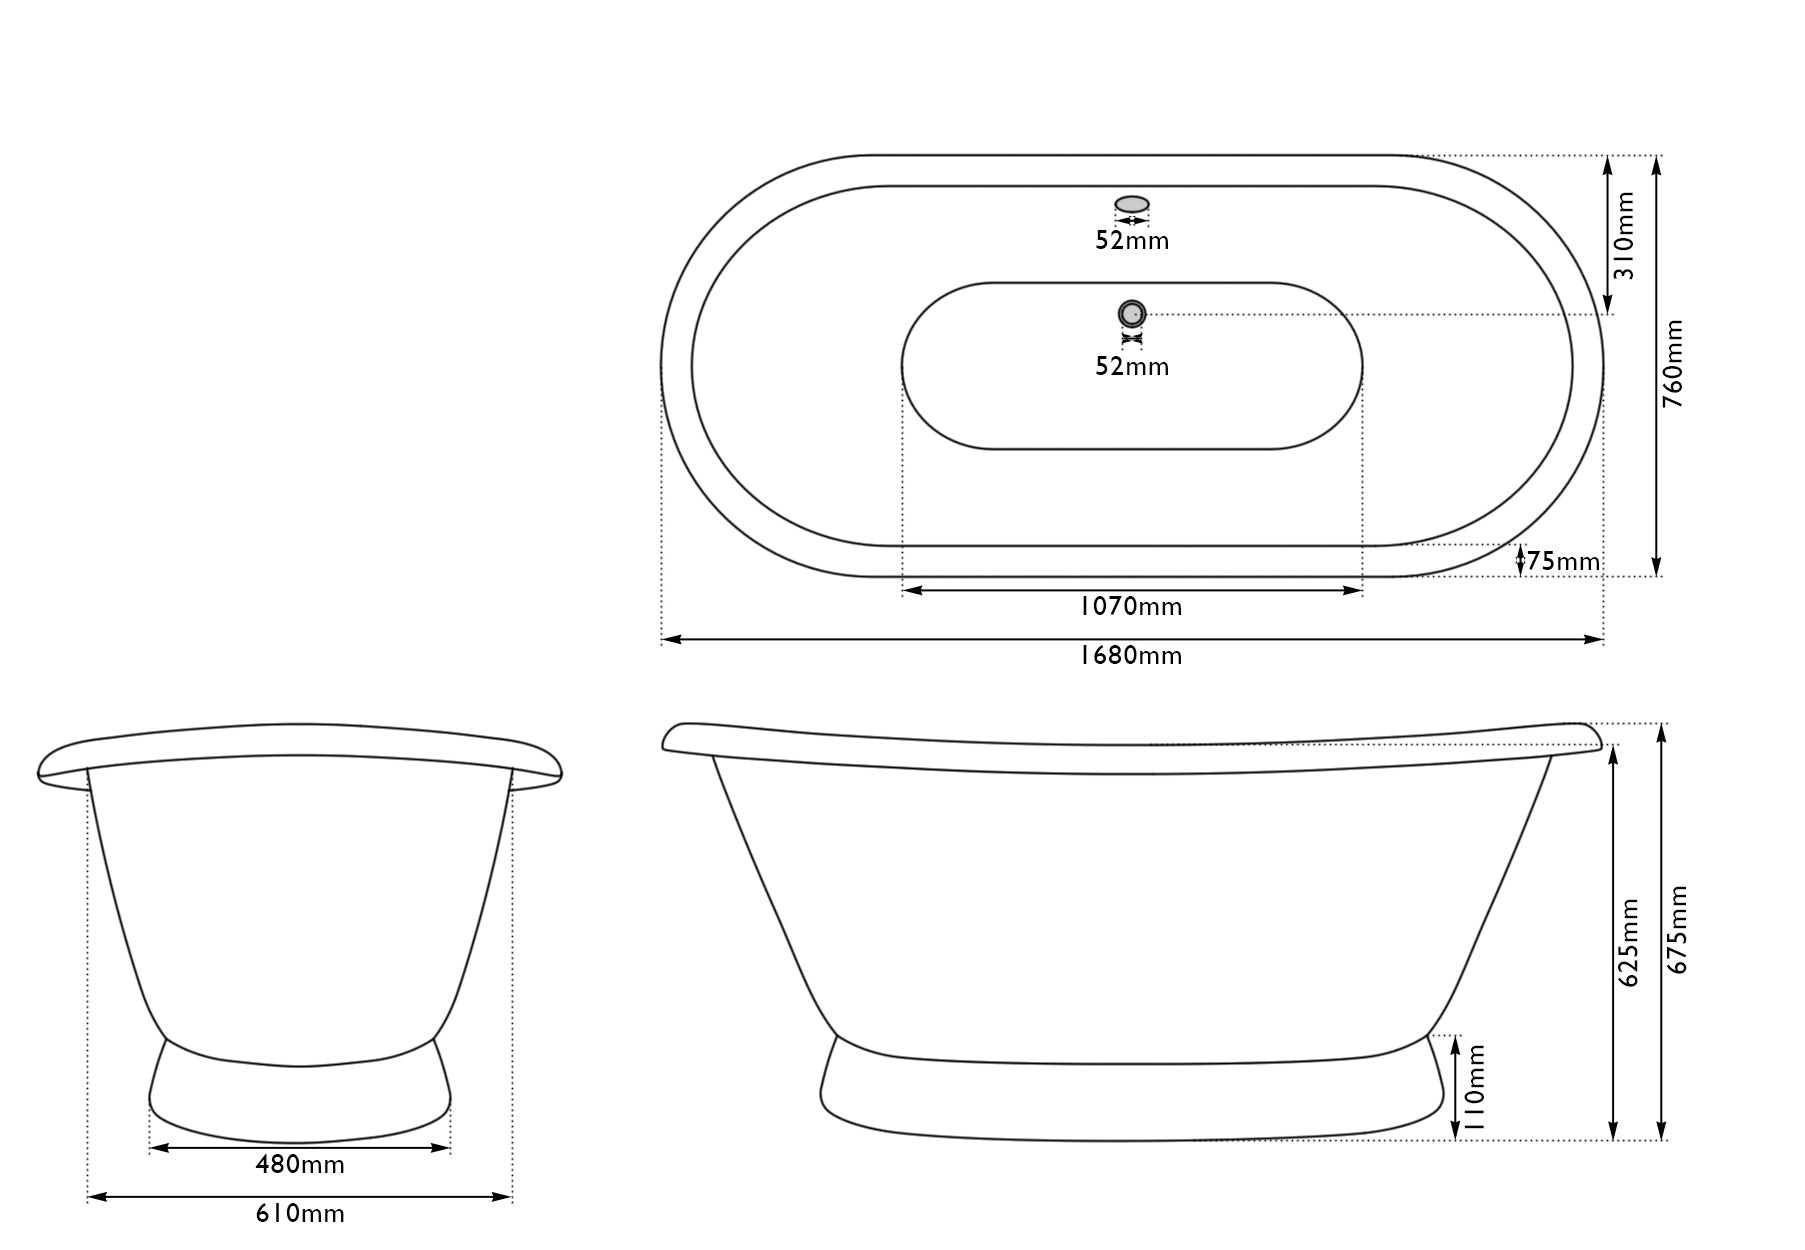 Dimensions for The Bath Co. Stirling province blue cast iron bath